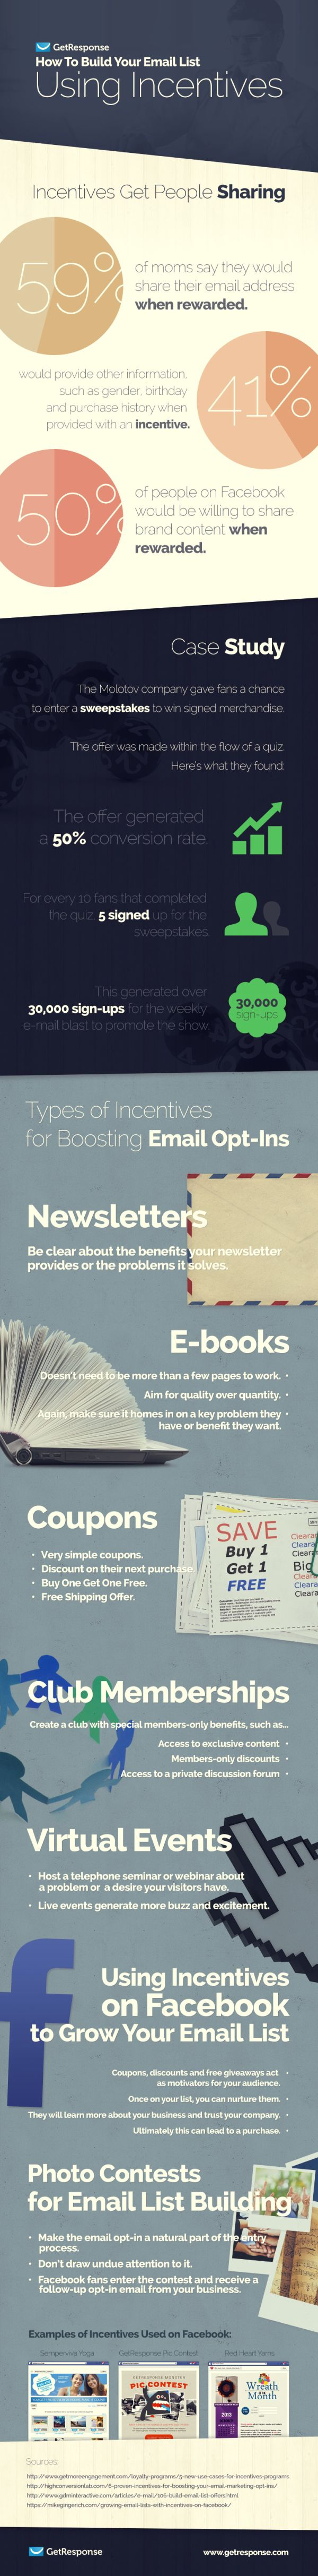 How to Build Your #Email List Using Incentives #infographic #emailing